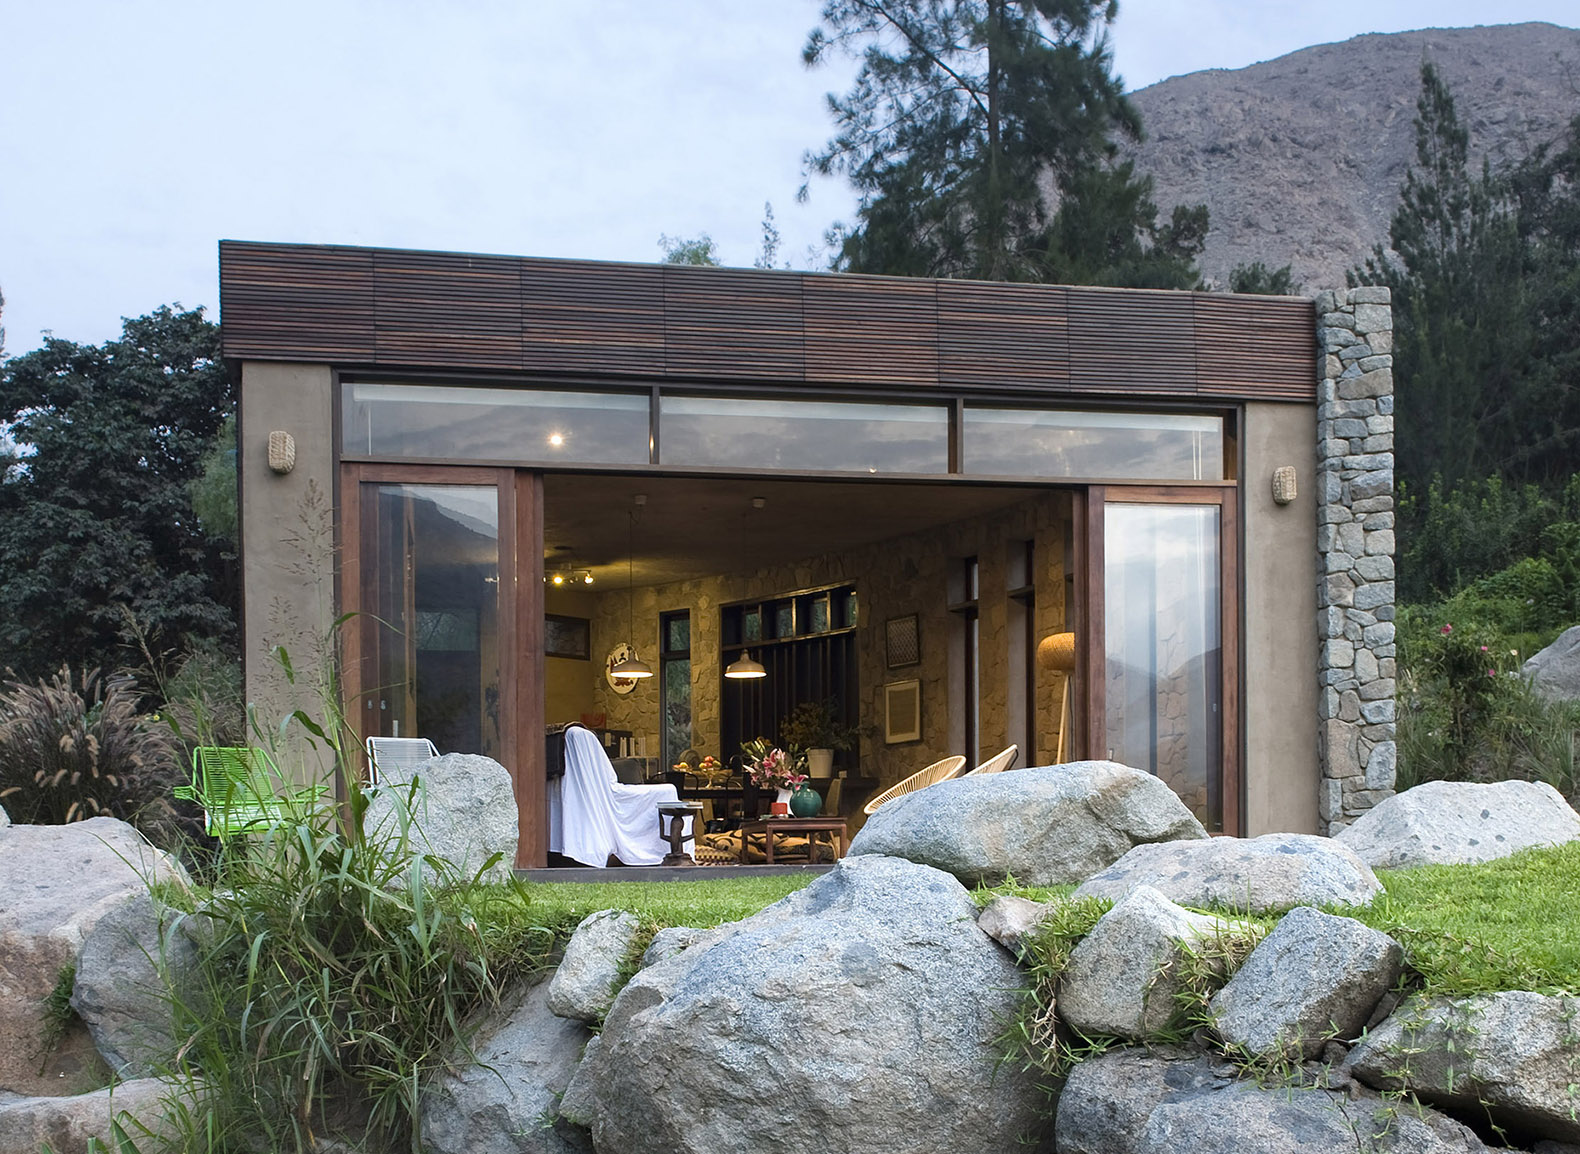 Peru's Chontay house was made using locally-sourced wood and clay to help it blend in with the surrounding mountains